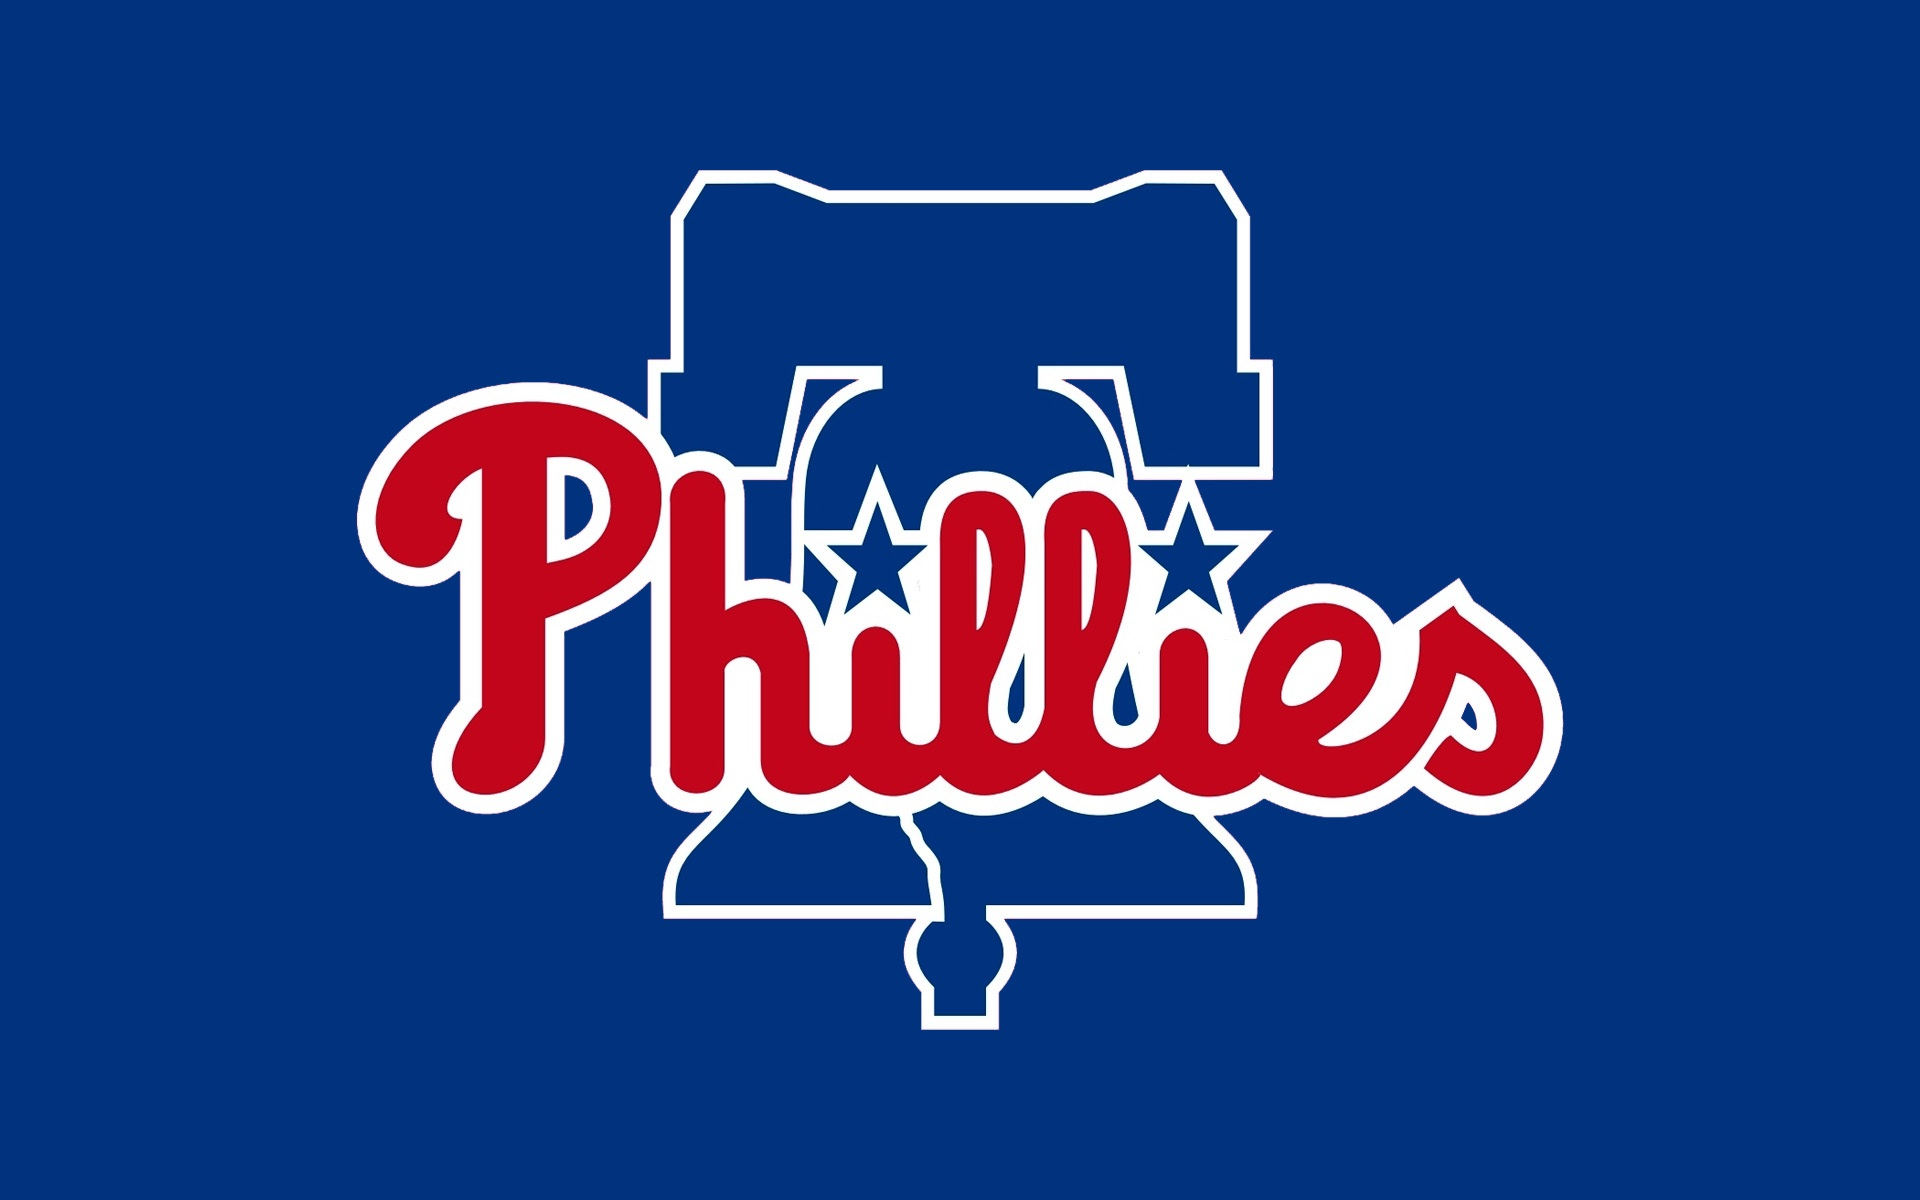 Phillies Iphone Wallpaper Philadelphia Phillies Full Hd Wallpaper And Background